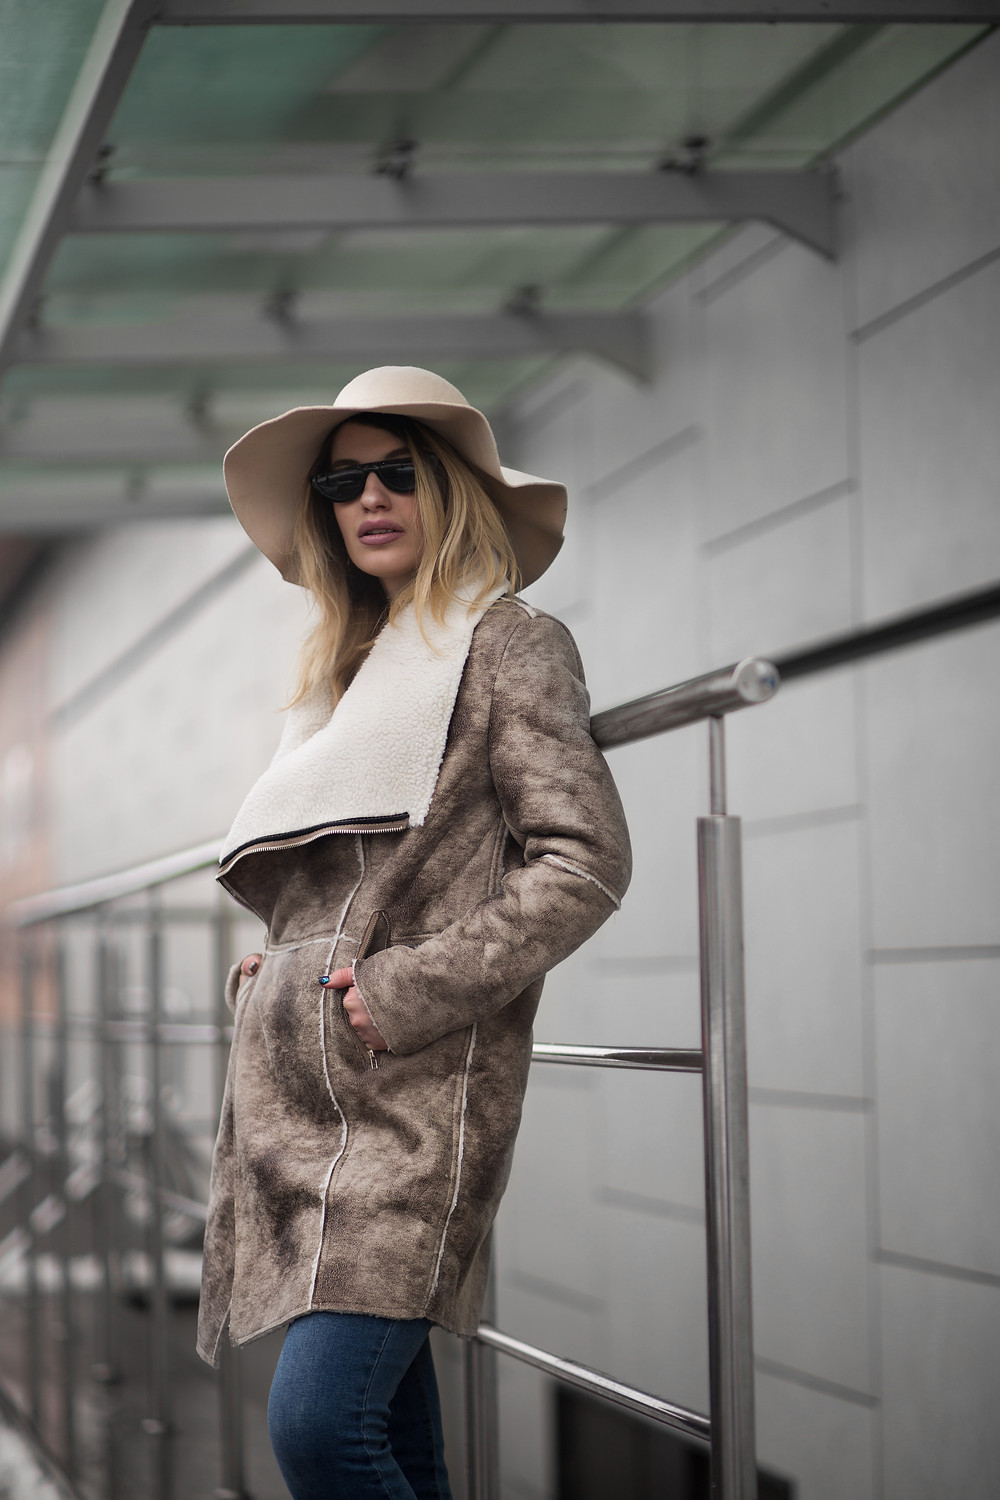 stylish blonder woman in hat and fashionable coat